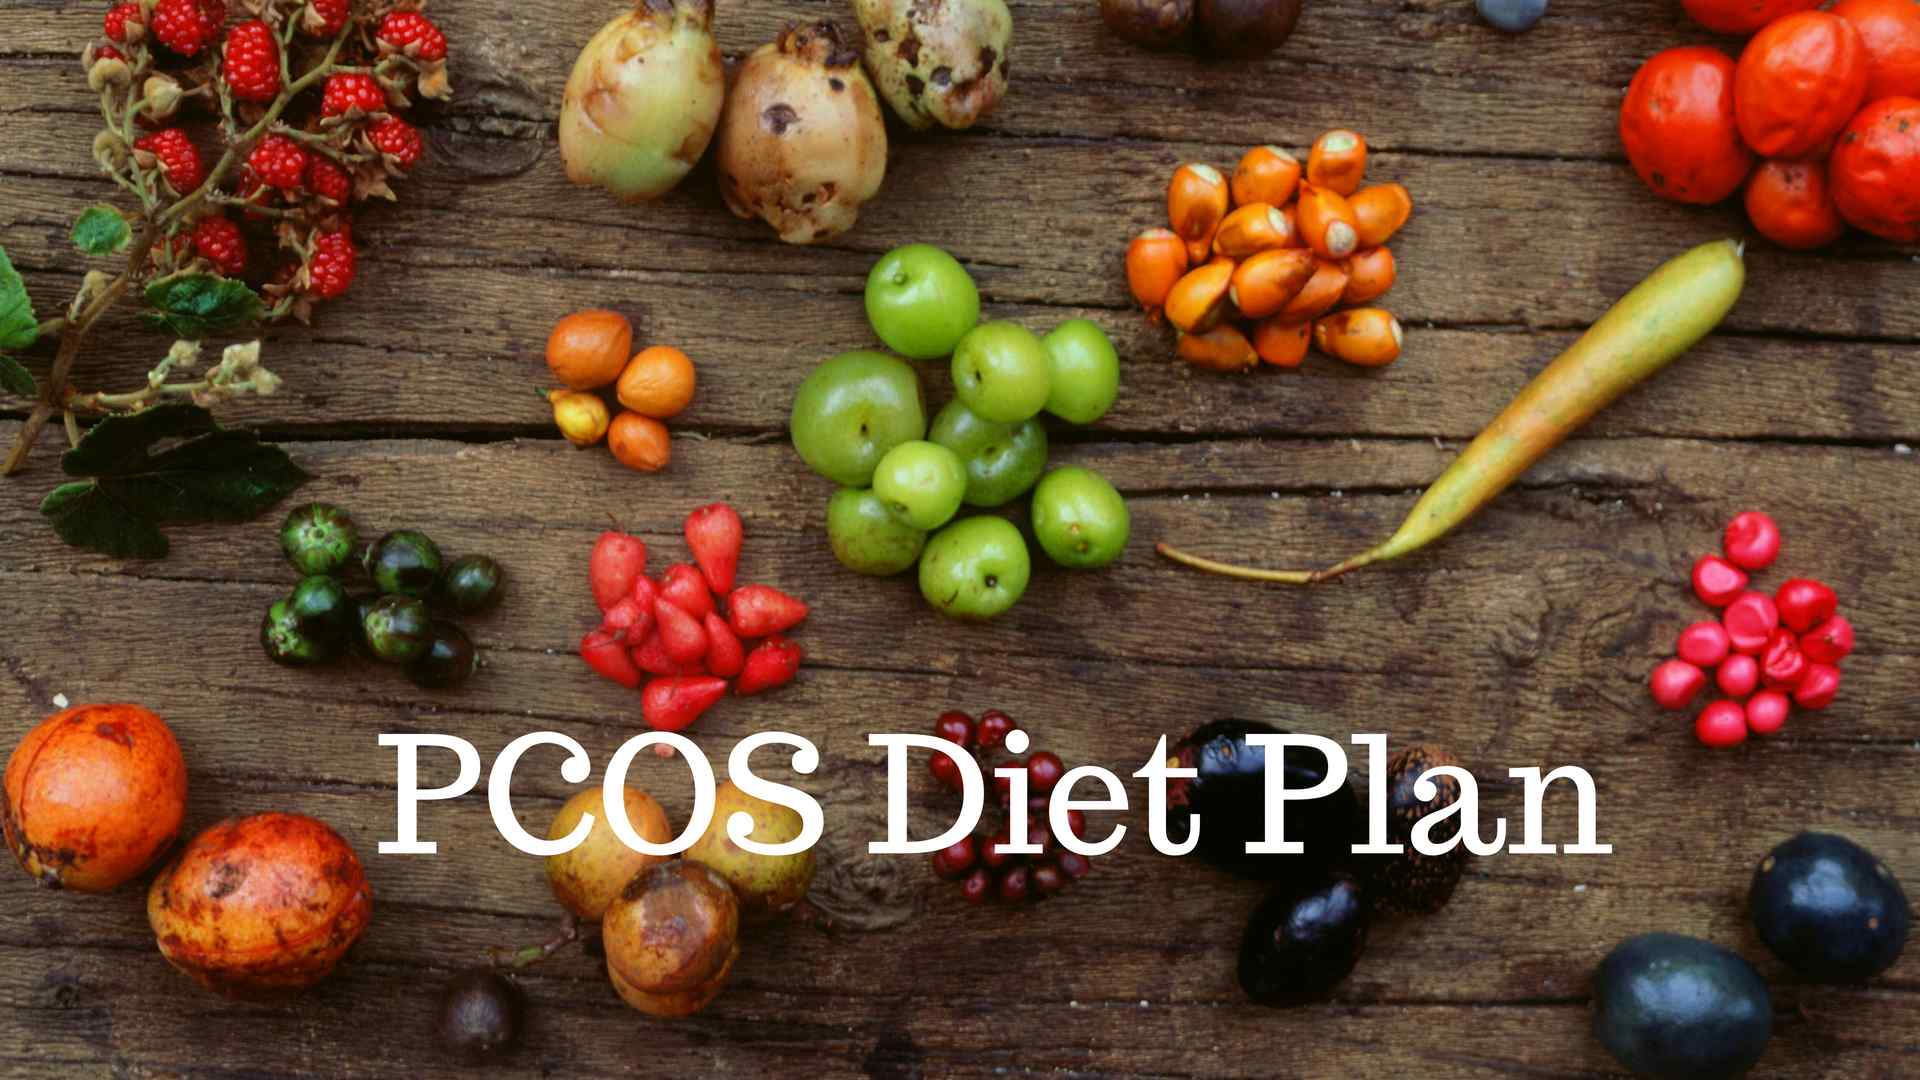 PCOS Diet Plan – What To Include And What Not To (PCOS Meal Plan)